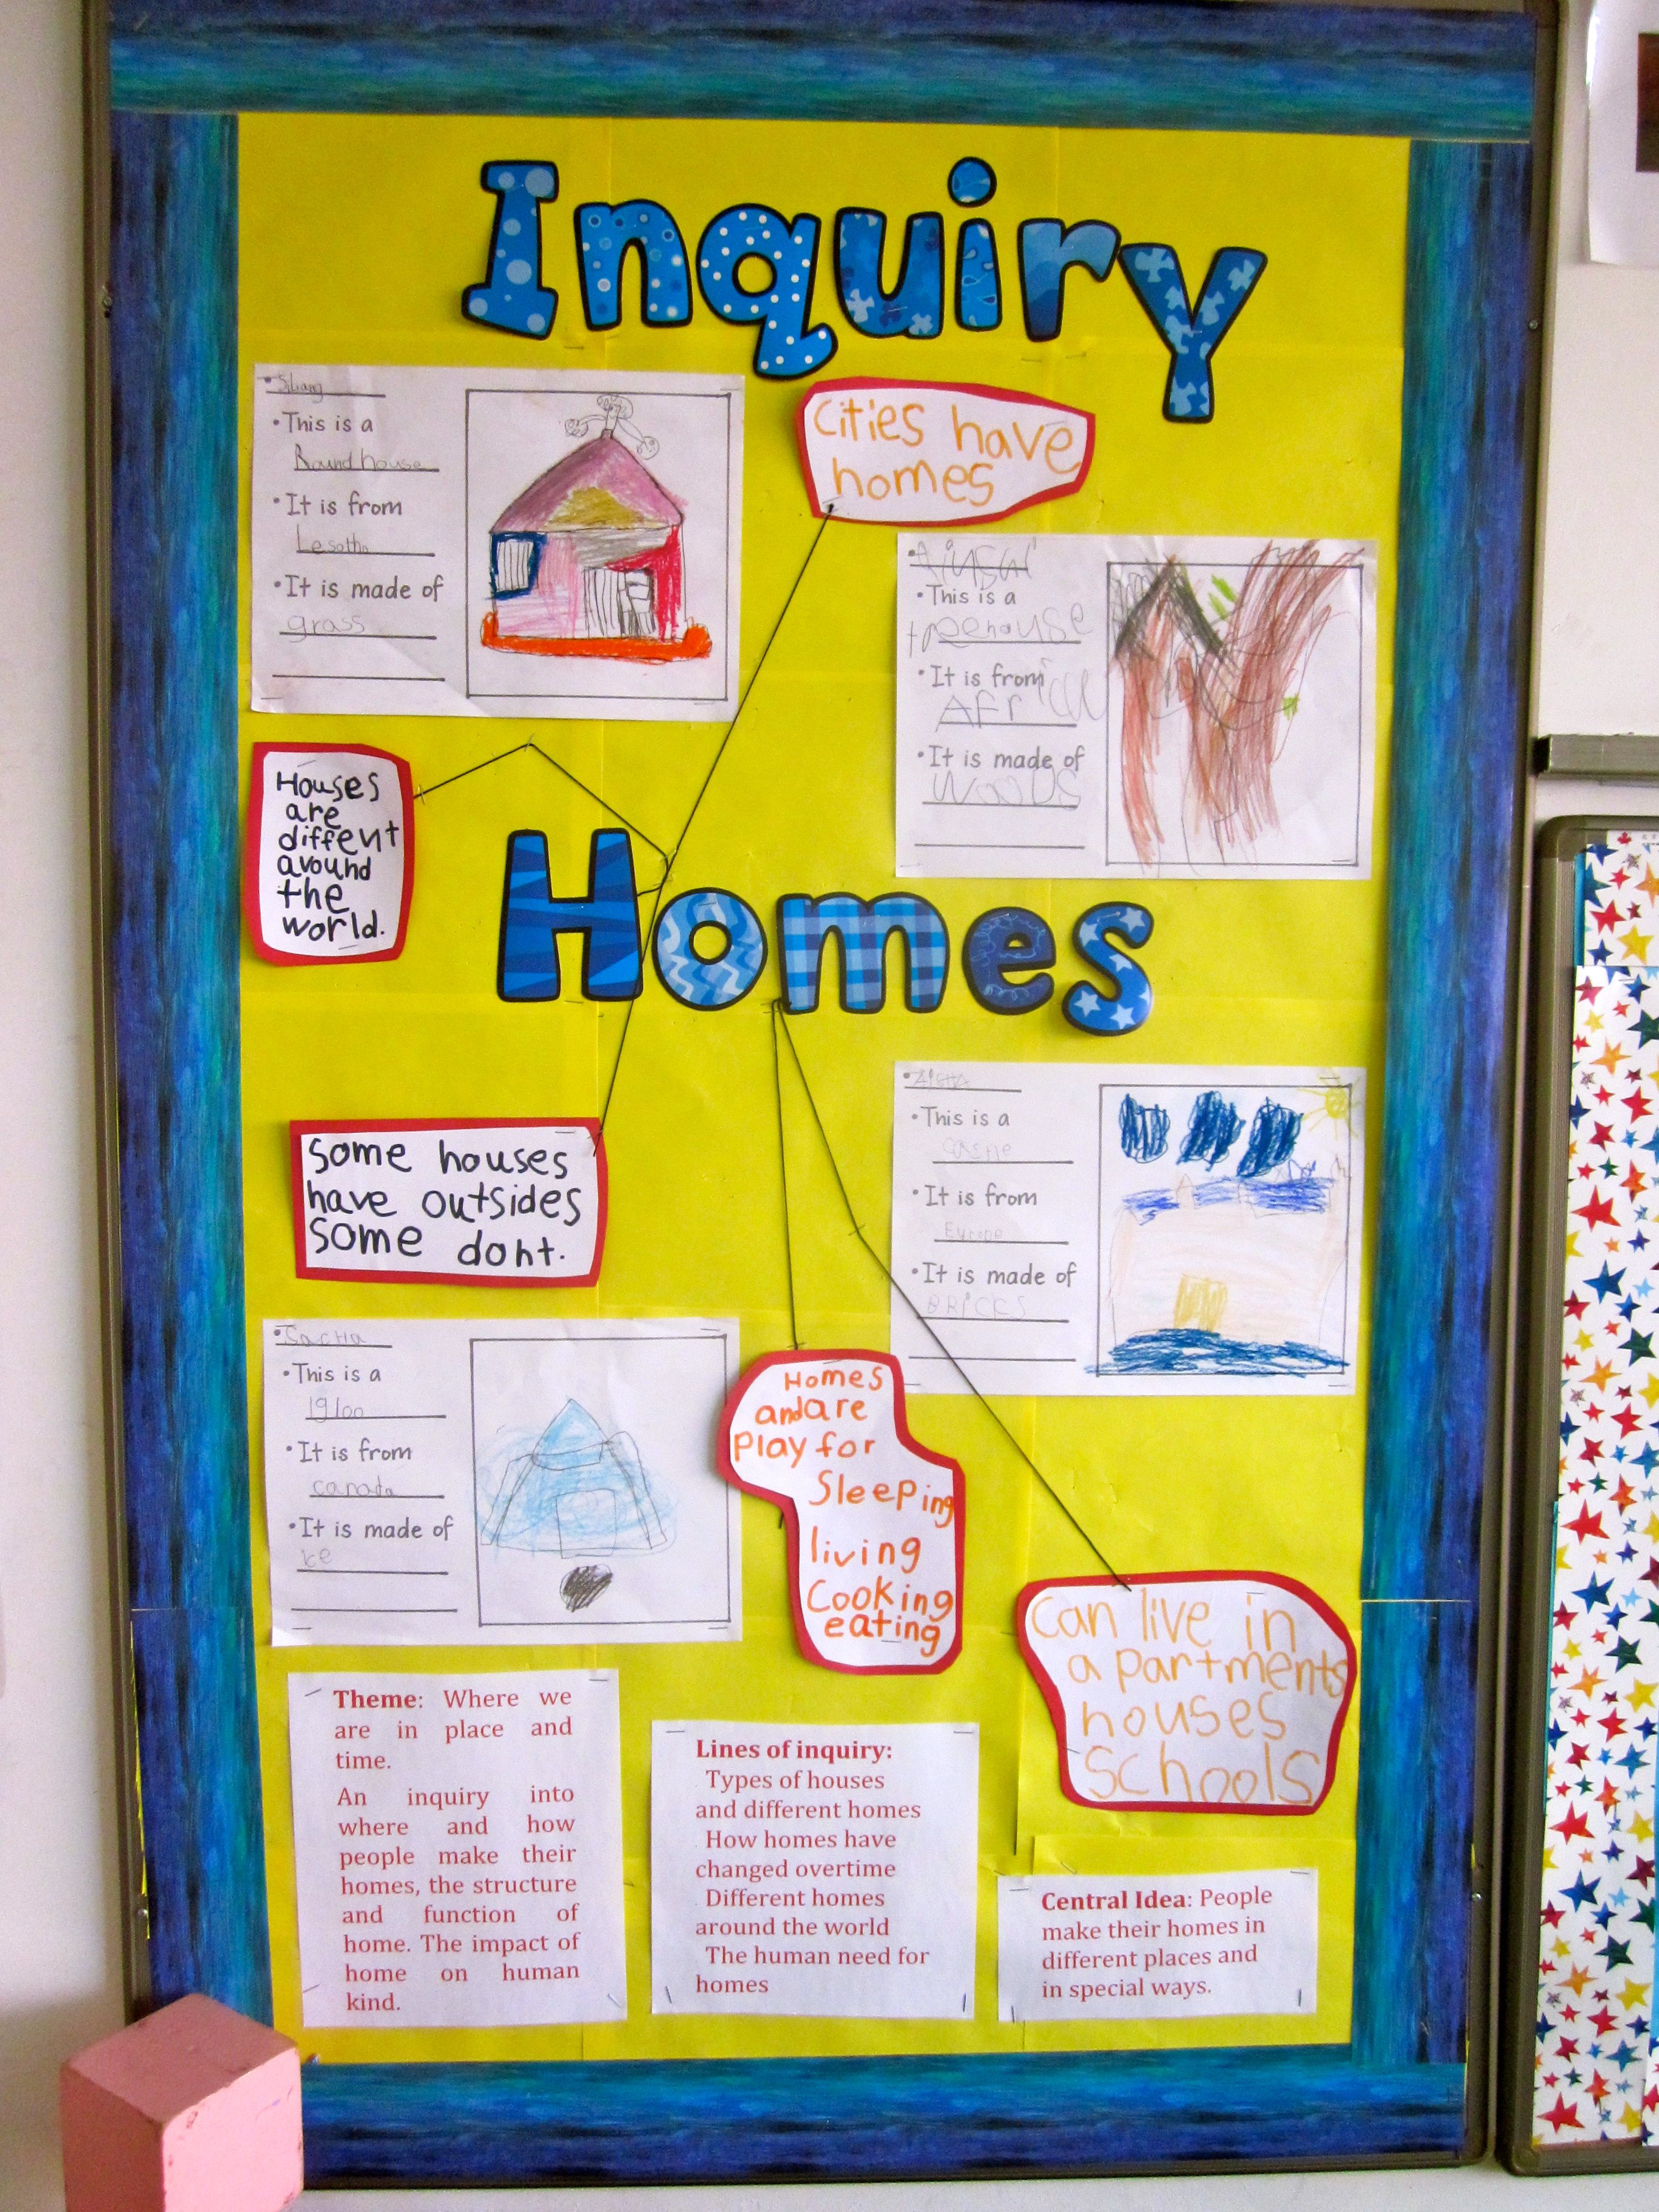 Pyp Kindergarten Made Board For Inquiry Into Homes Around